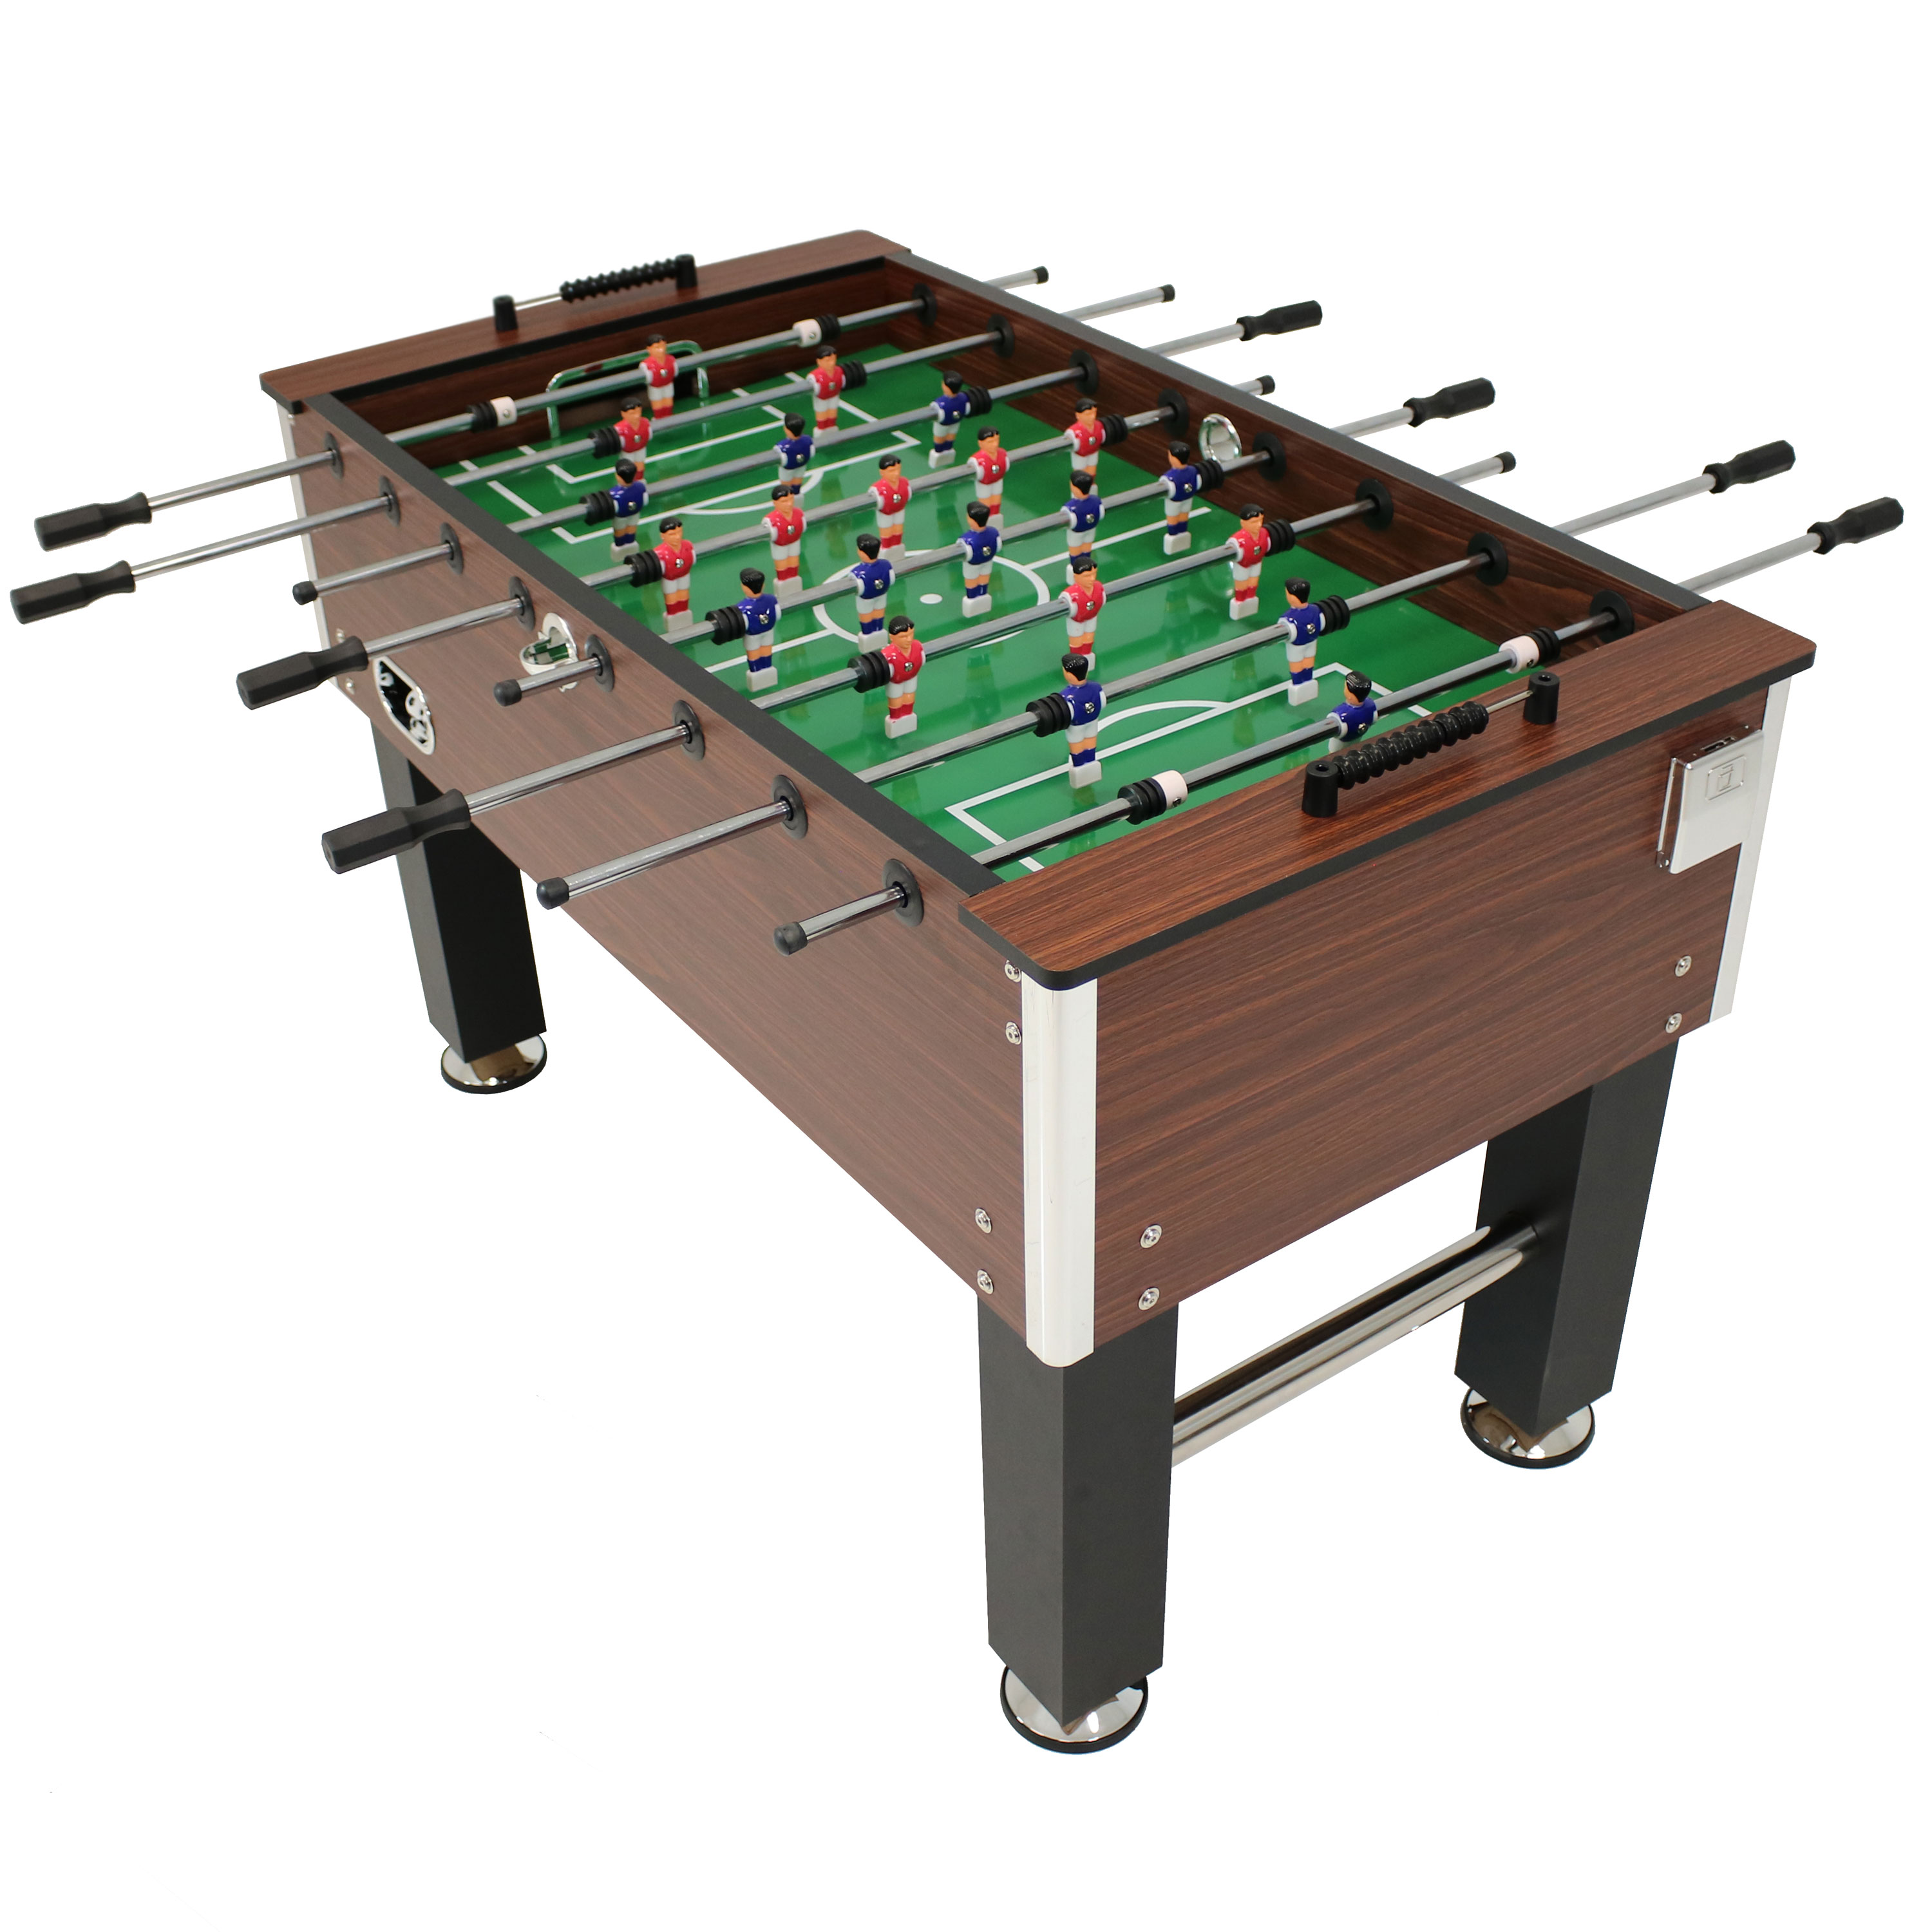 Faux Wood Foosball Table Folding Drink Holders Sports Arcade Soccer Game Room Photo